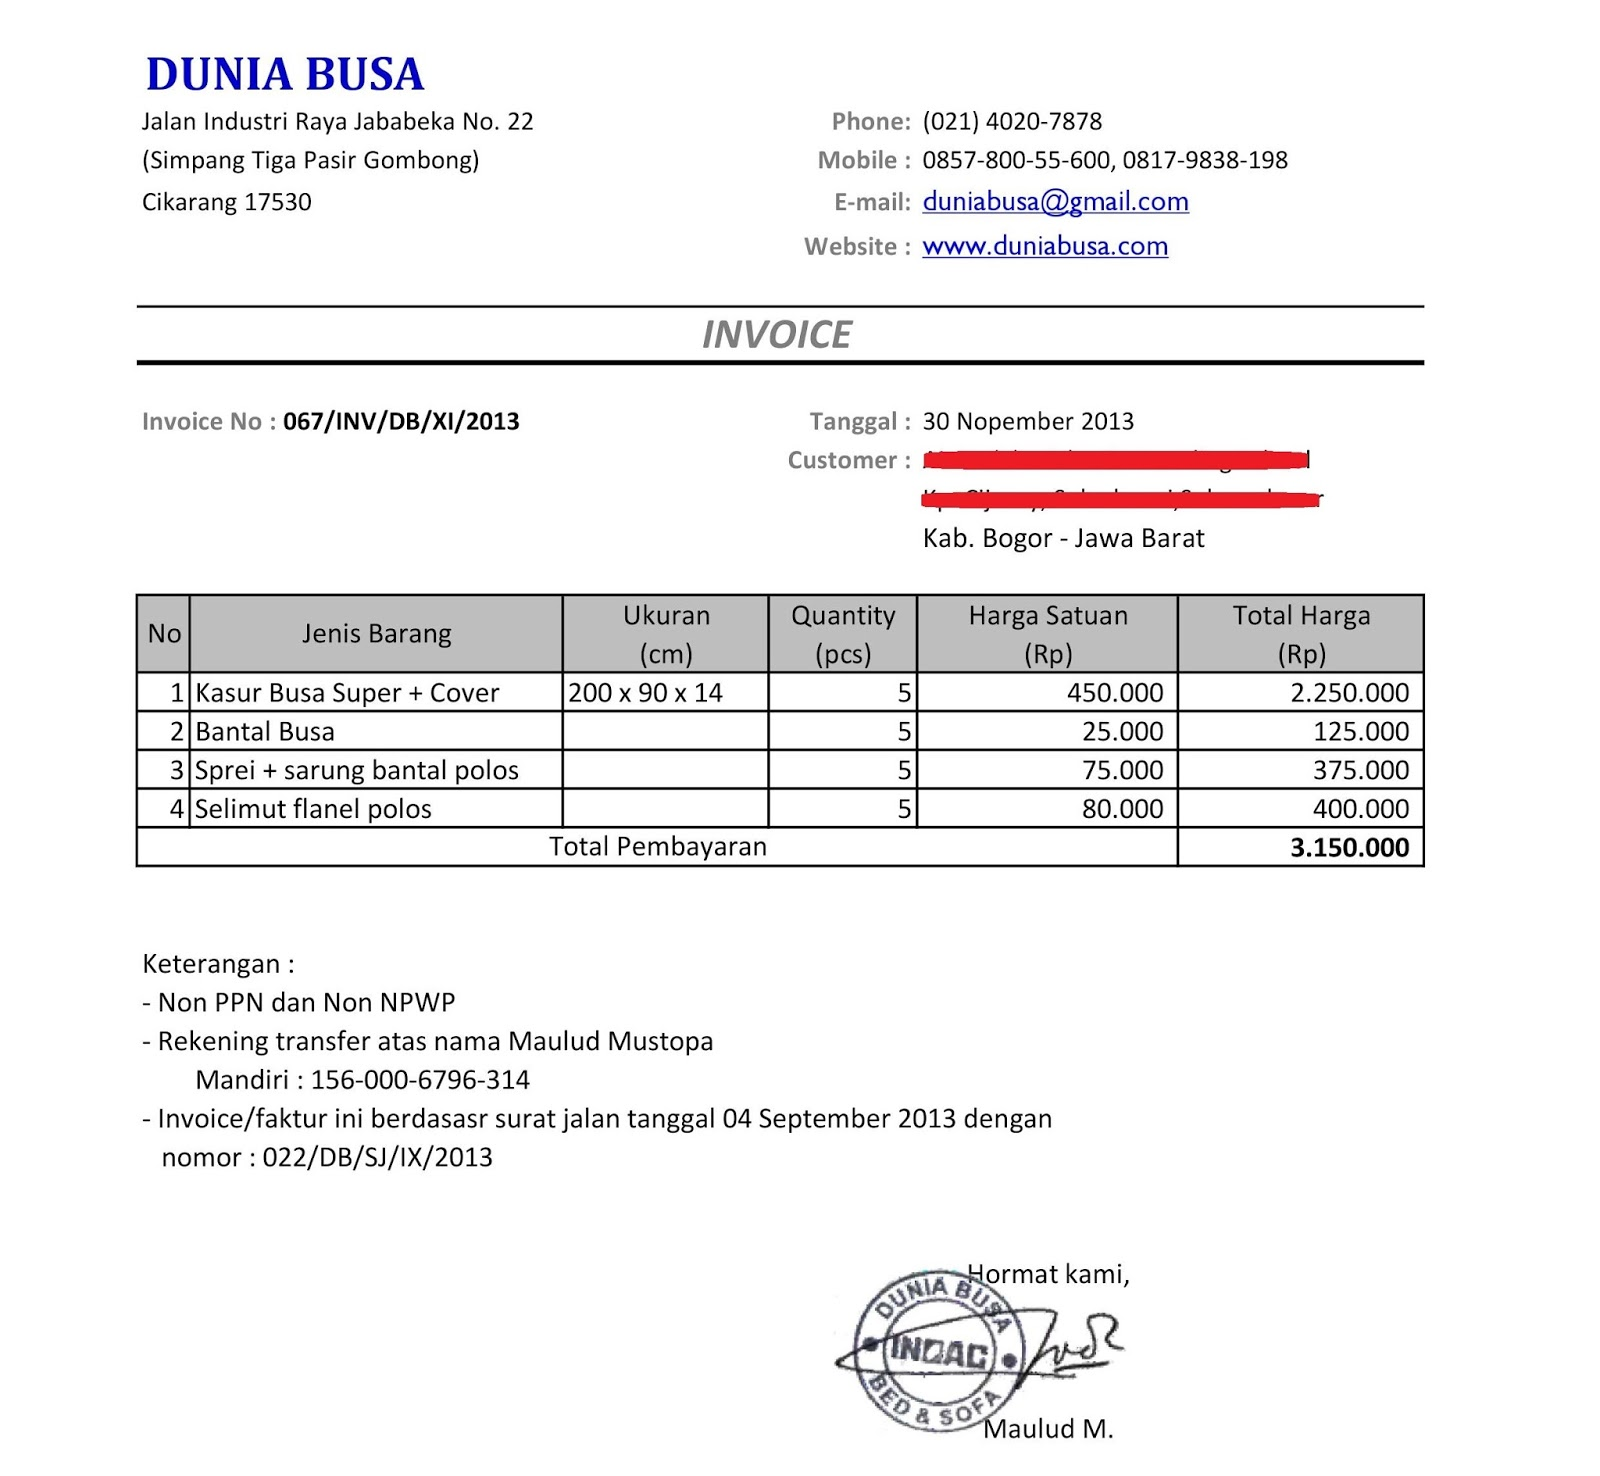 Centralasianshepherdus  Nice Free Invoice Online  Create Invoice Online  Invoice Template  With Remarkable Contoh Format Invoice Atau Surat Tagihan  Brankas Arsip  Free Invoice Online With Cute Invoice Templates In Excel Also Simple Invoice Template Uk In Addition Proforma Invoice Template Doc And Uk Vat Invoice Template As Well As Crm And Invoicing Additionally Sample Invoice Xls From Sklepco With Centralasianshepherdus  Remarkable Free Invoice Online  Create Invoice Online  Invoice Template  With Cute Contoh Format Invoice Atau Surat Tagihan  Brankas Arsip  Free Invoice Online And Nice Invoice Templates In Excel Also Simple Invoice Template Uk In Addition Proforma Invoice Template Doc From Sklepco